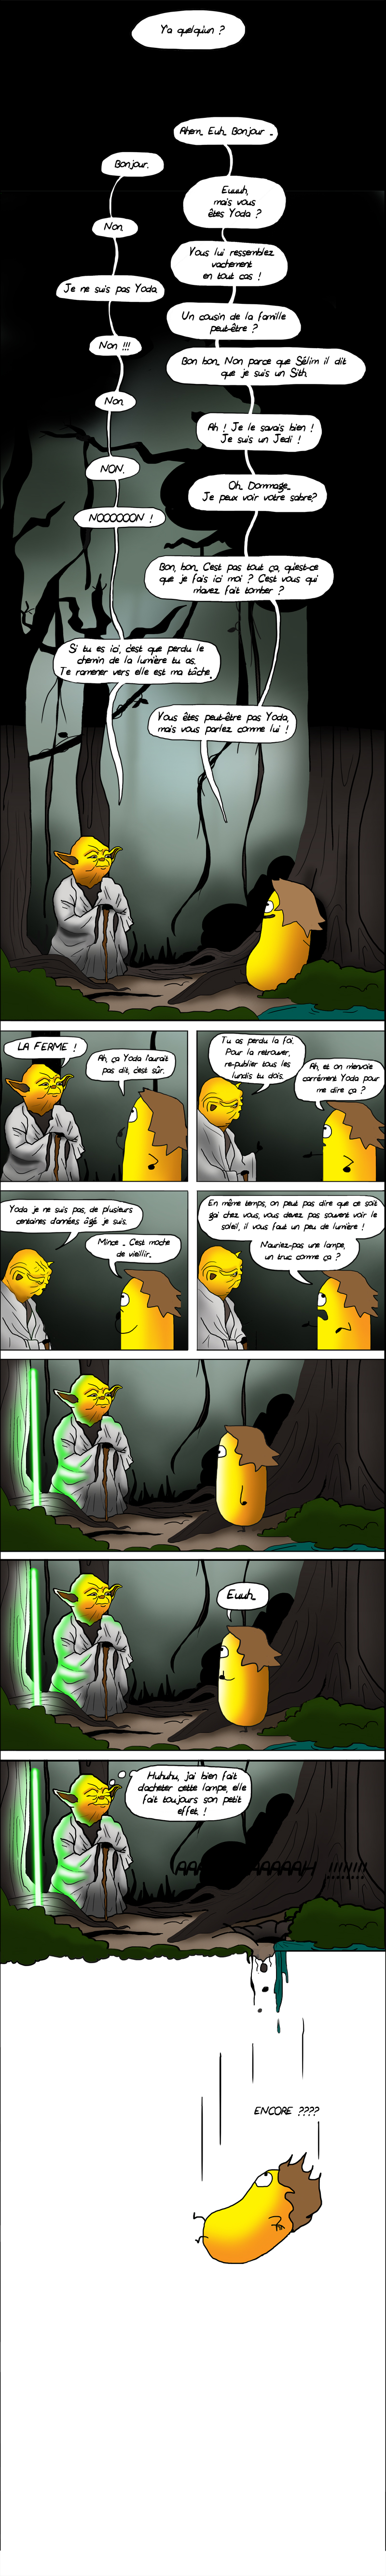 Star Wars Patate2